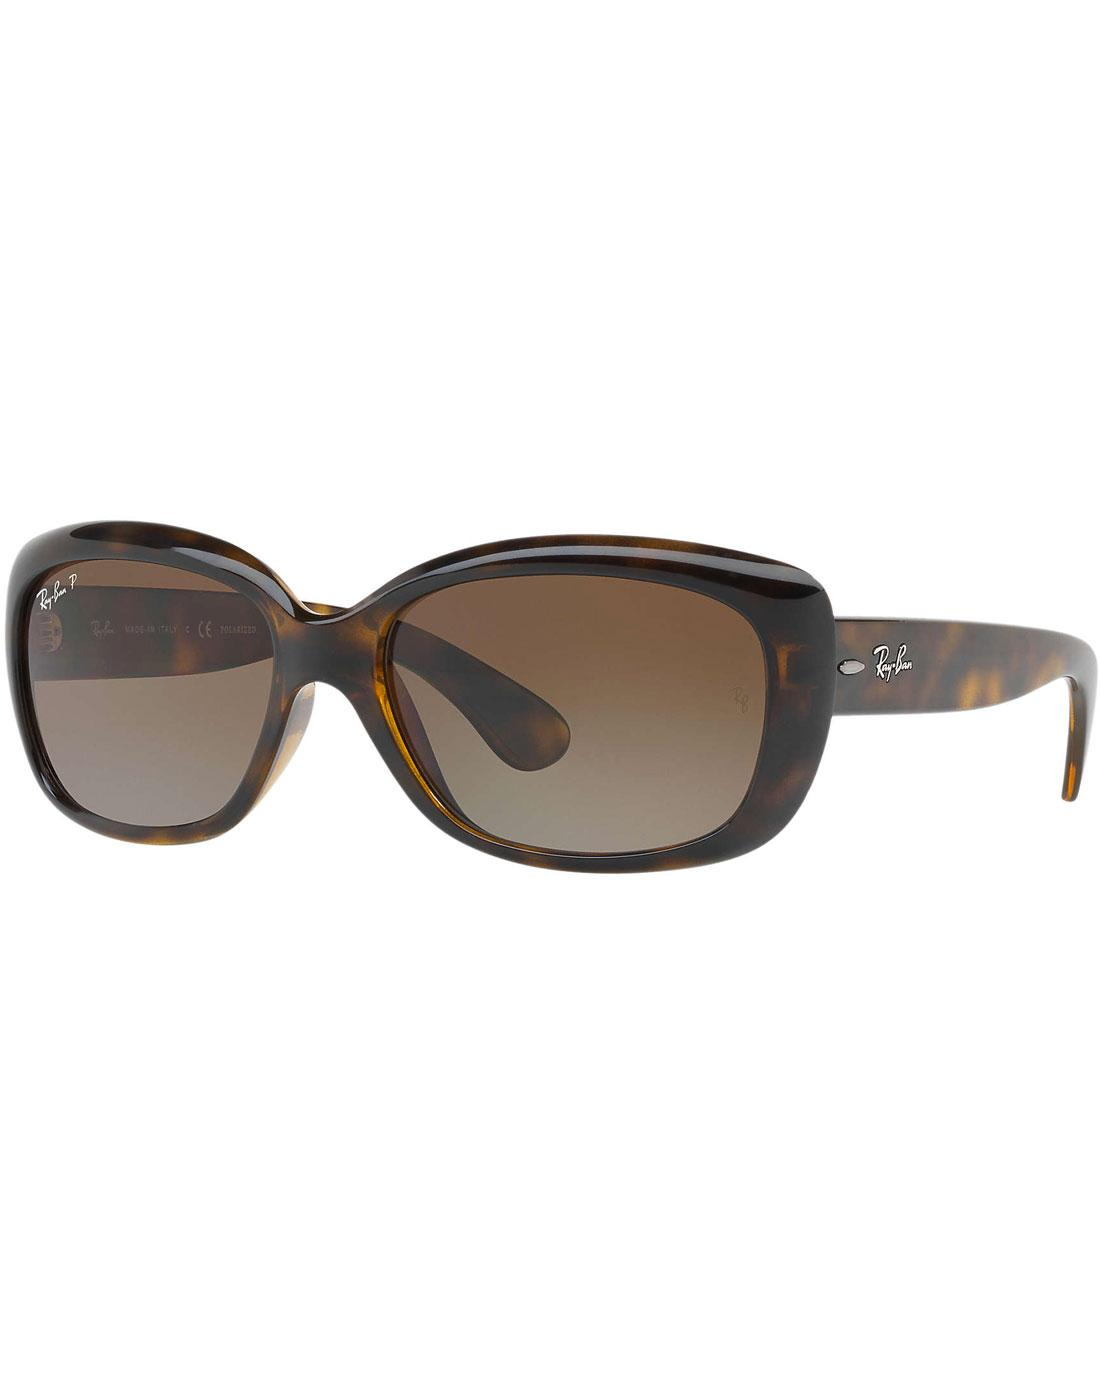 Jackie Ohh RAY-BAN Cats Eye Sunglasses - Tortoise